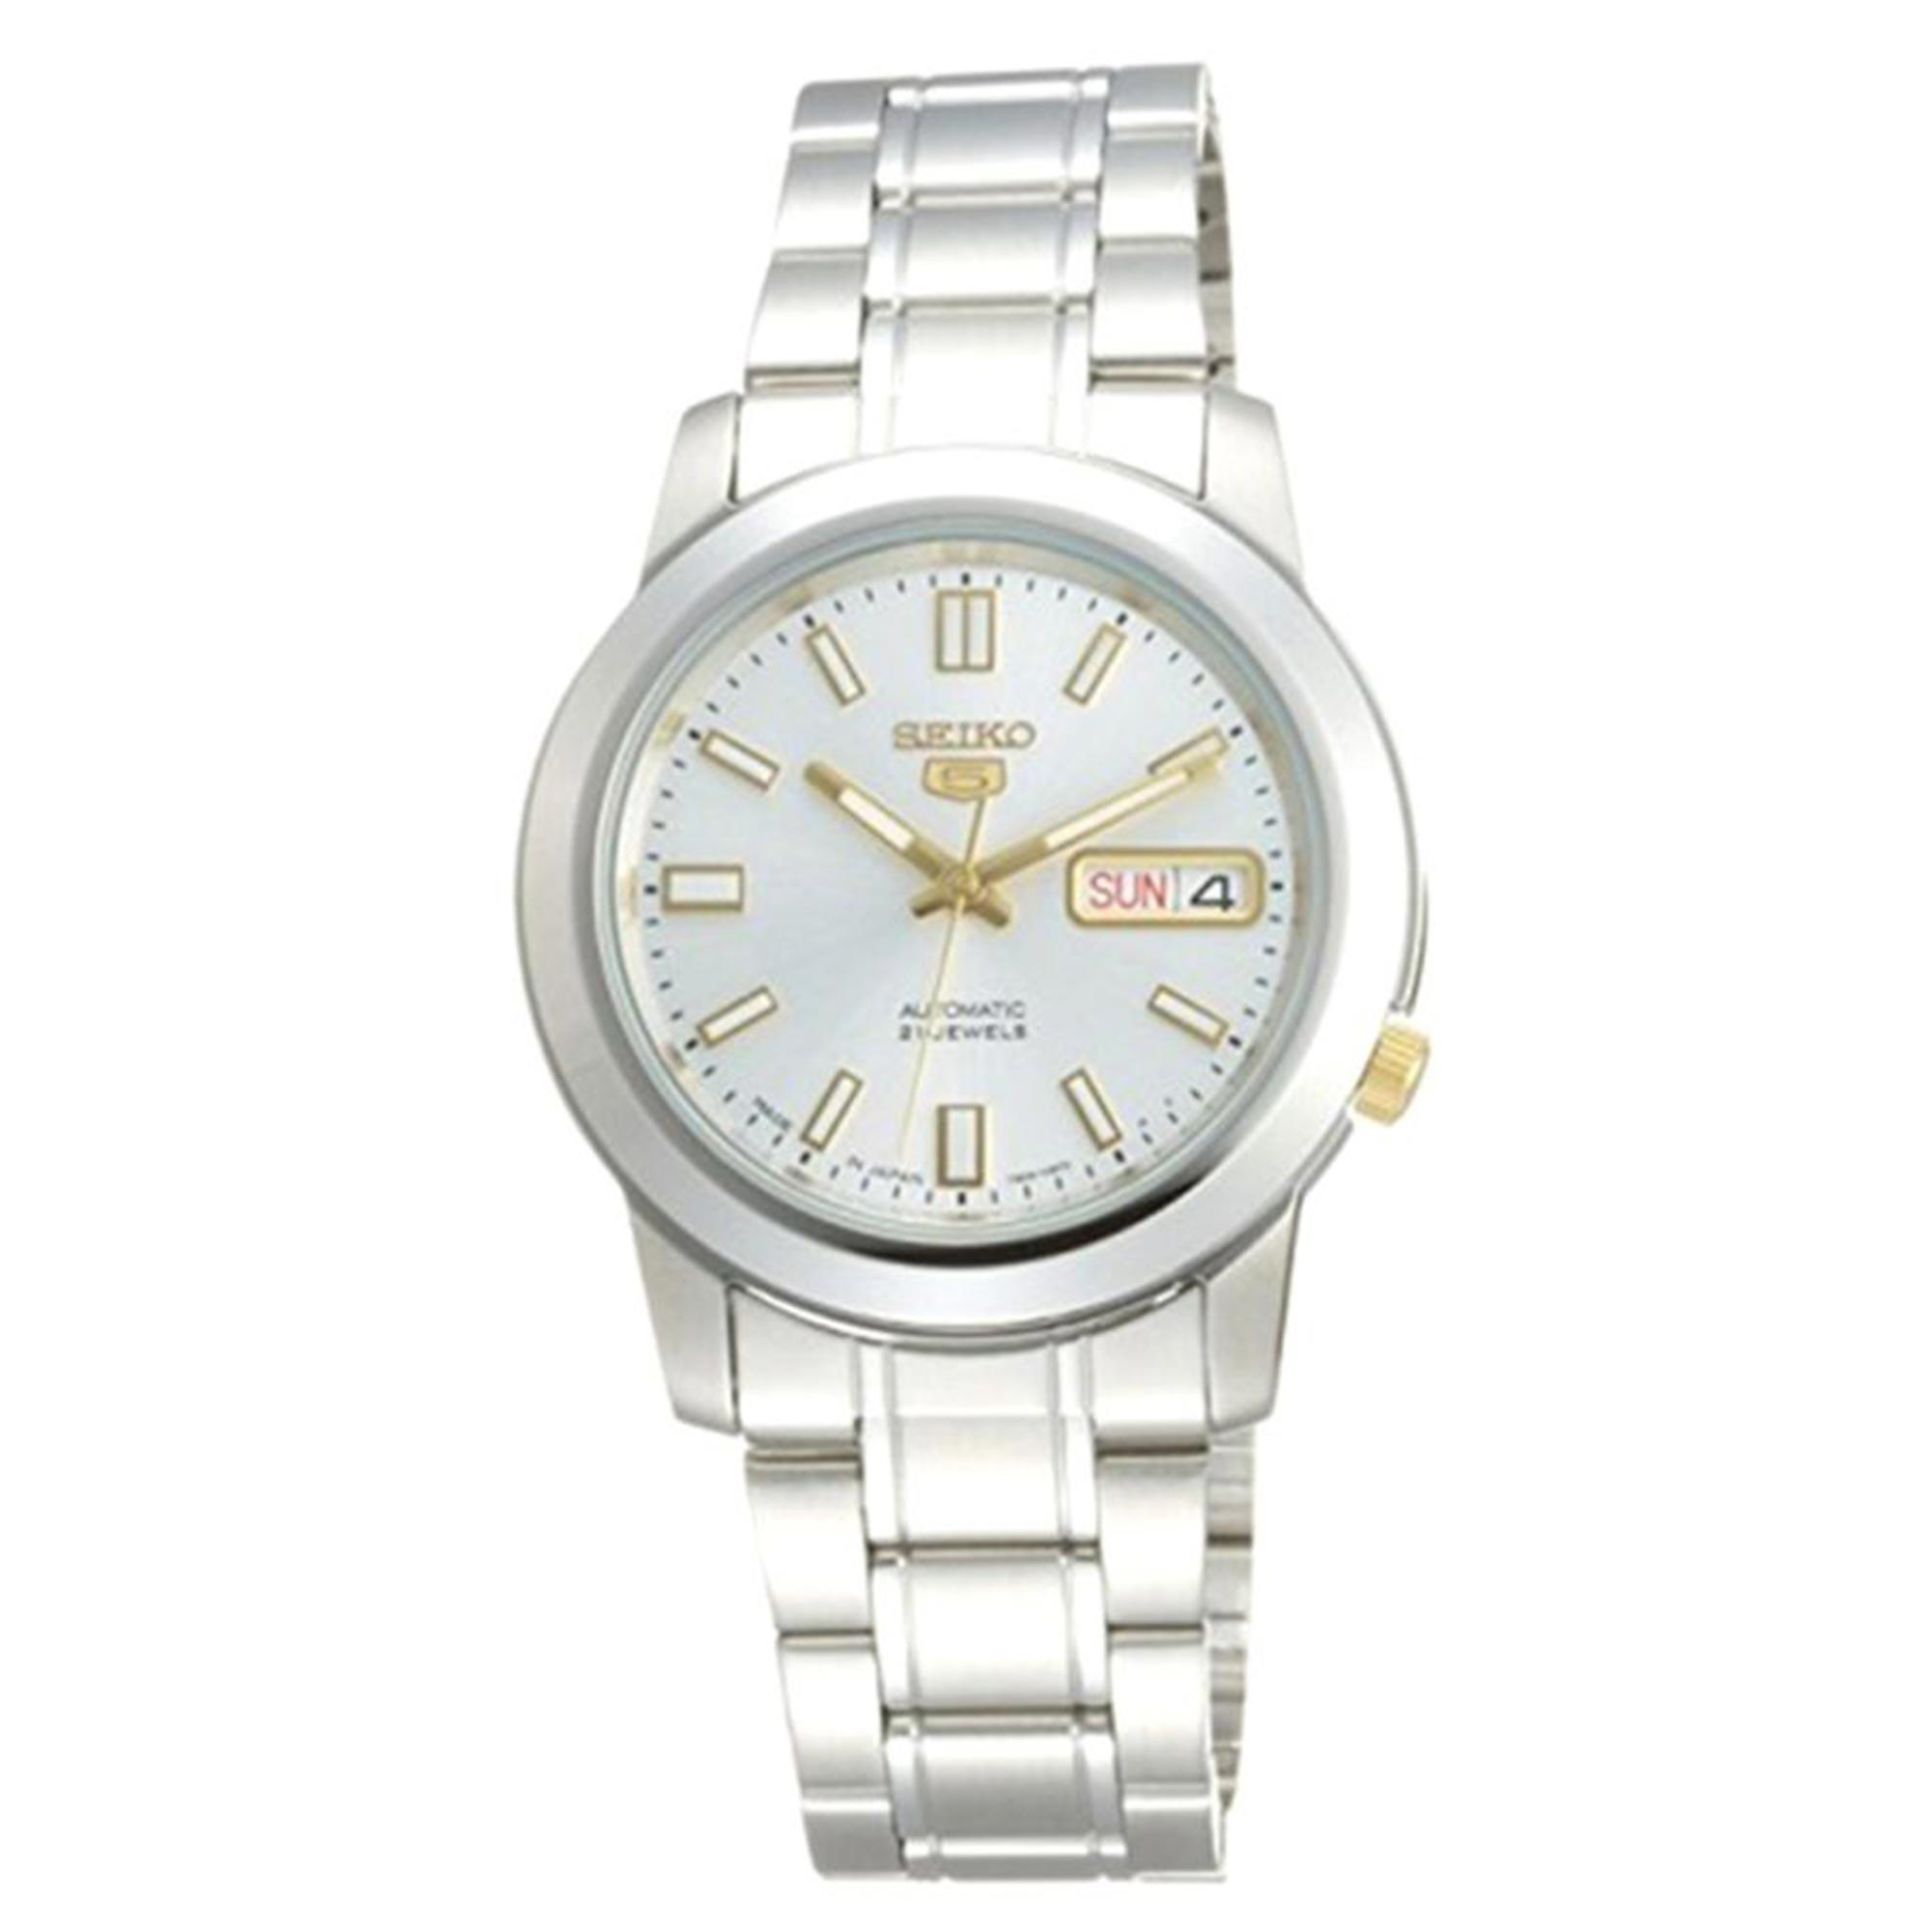 Seiko 5 Automatic White Dial Silver Stainless Steel Bracelet Men's Watch SNKK09K1 RRP £149